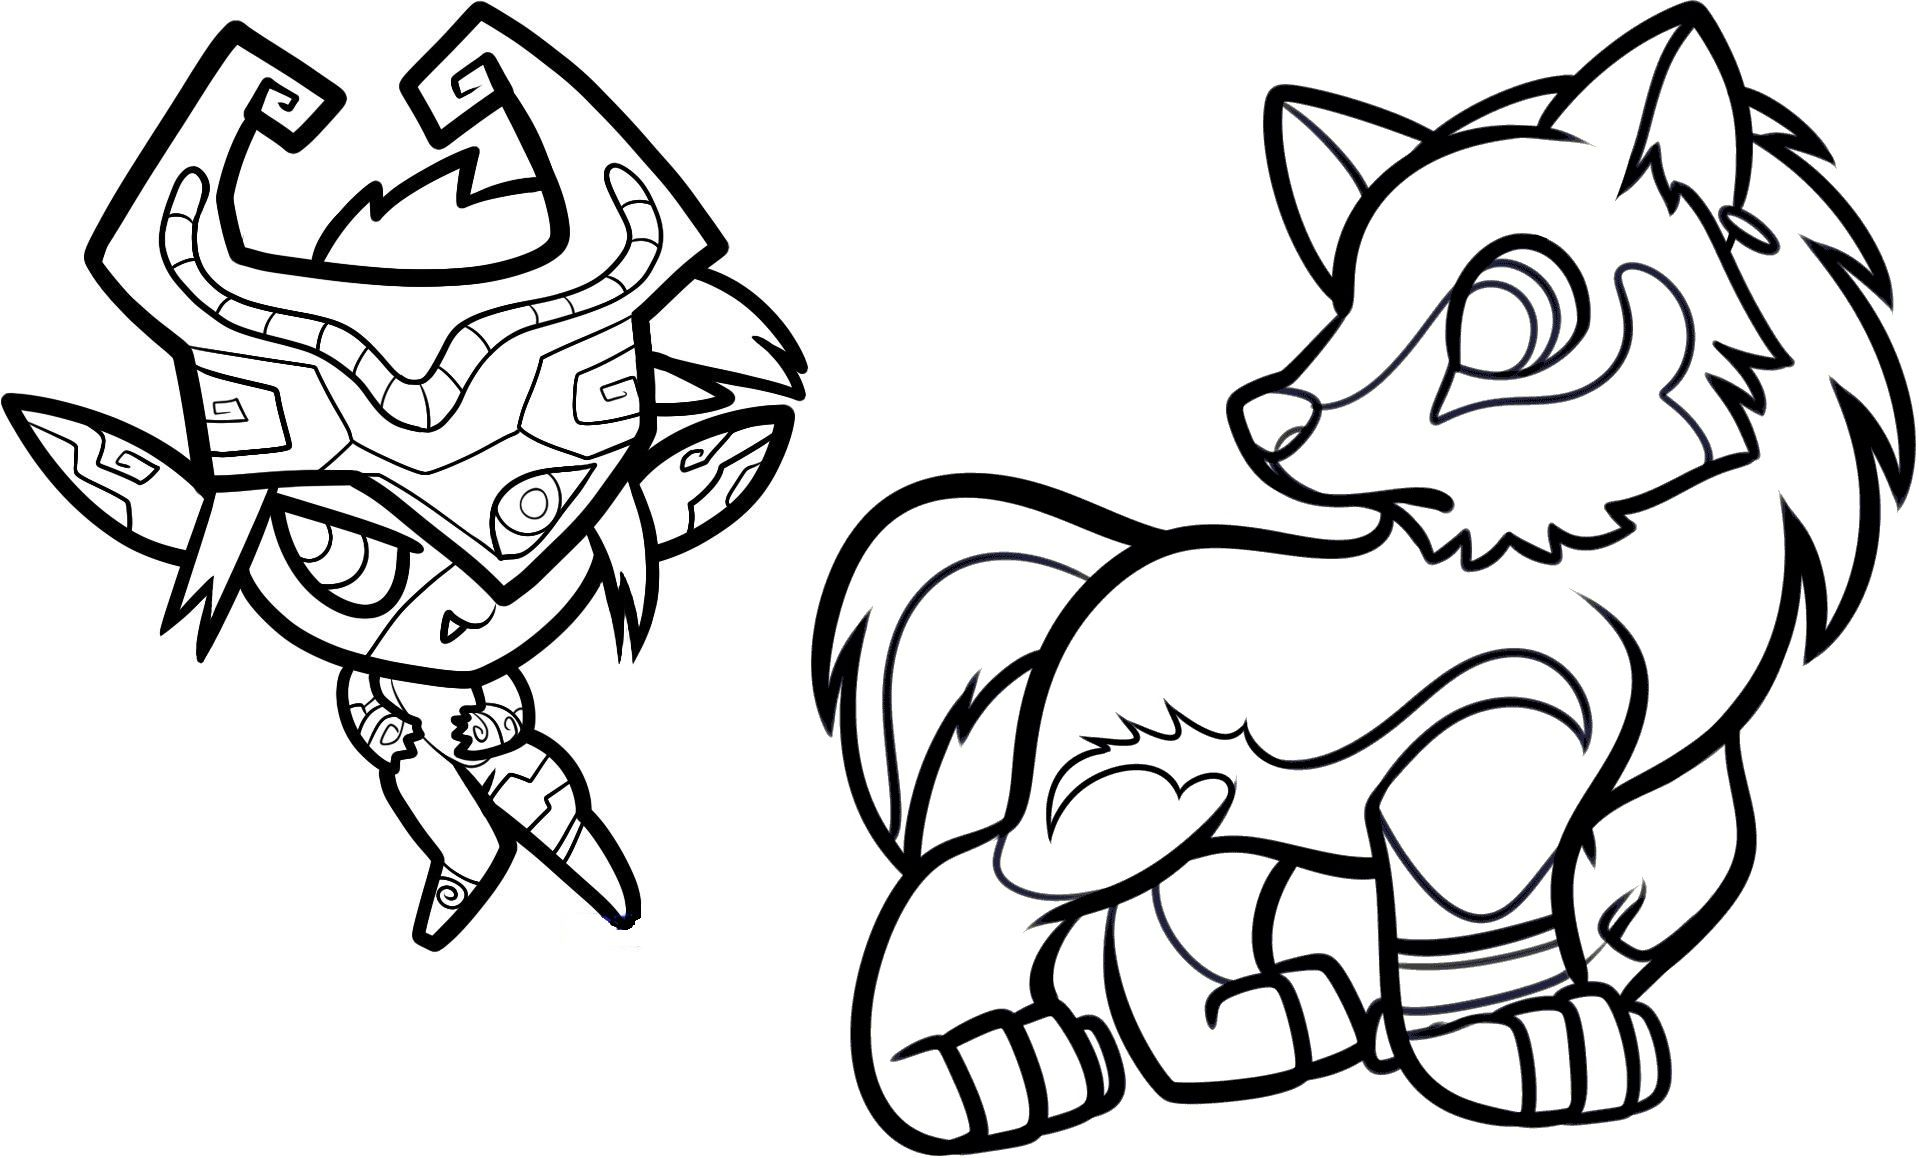 Midna And Link Wolf Coloring Pages For Children At The Library